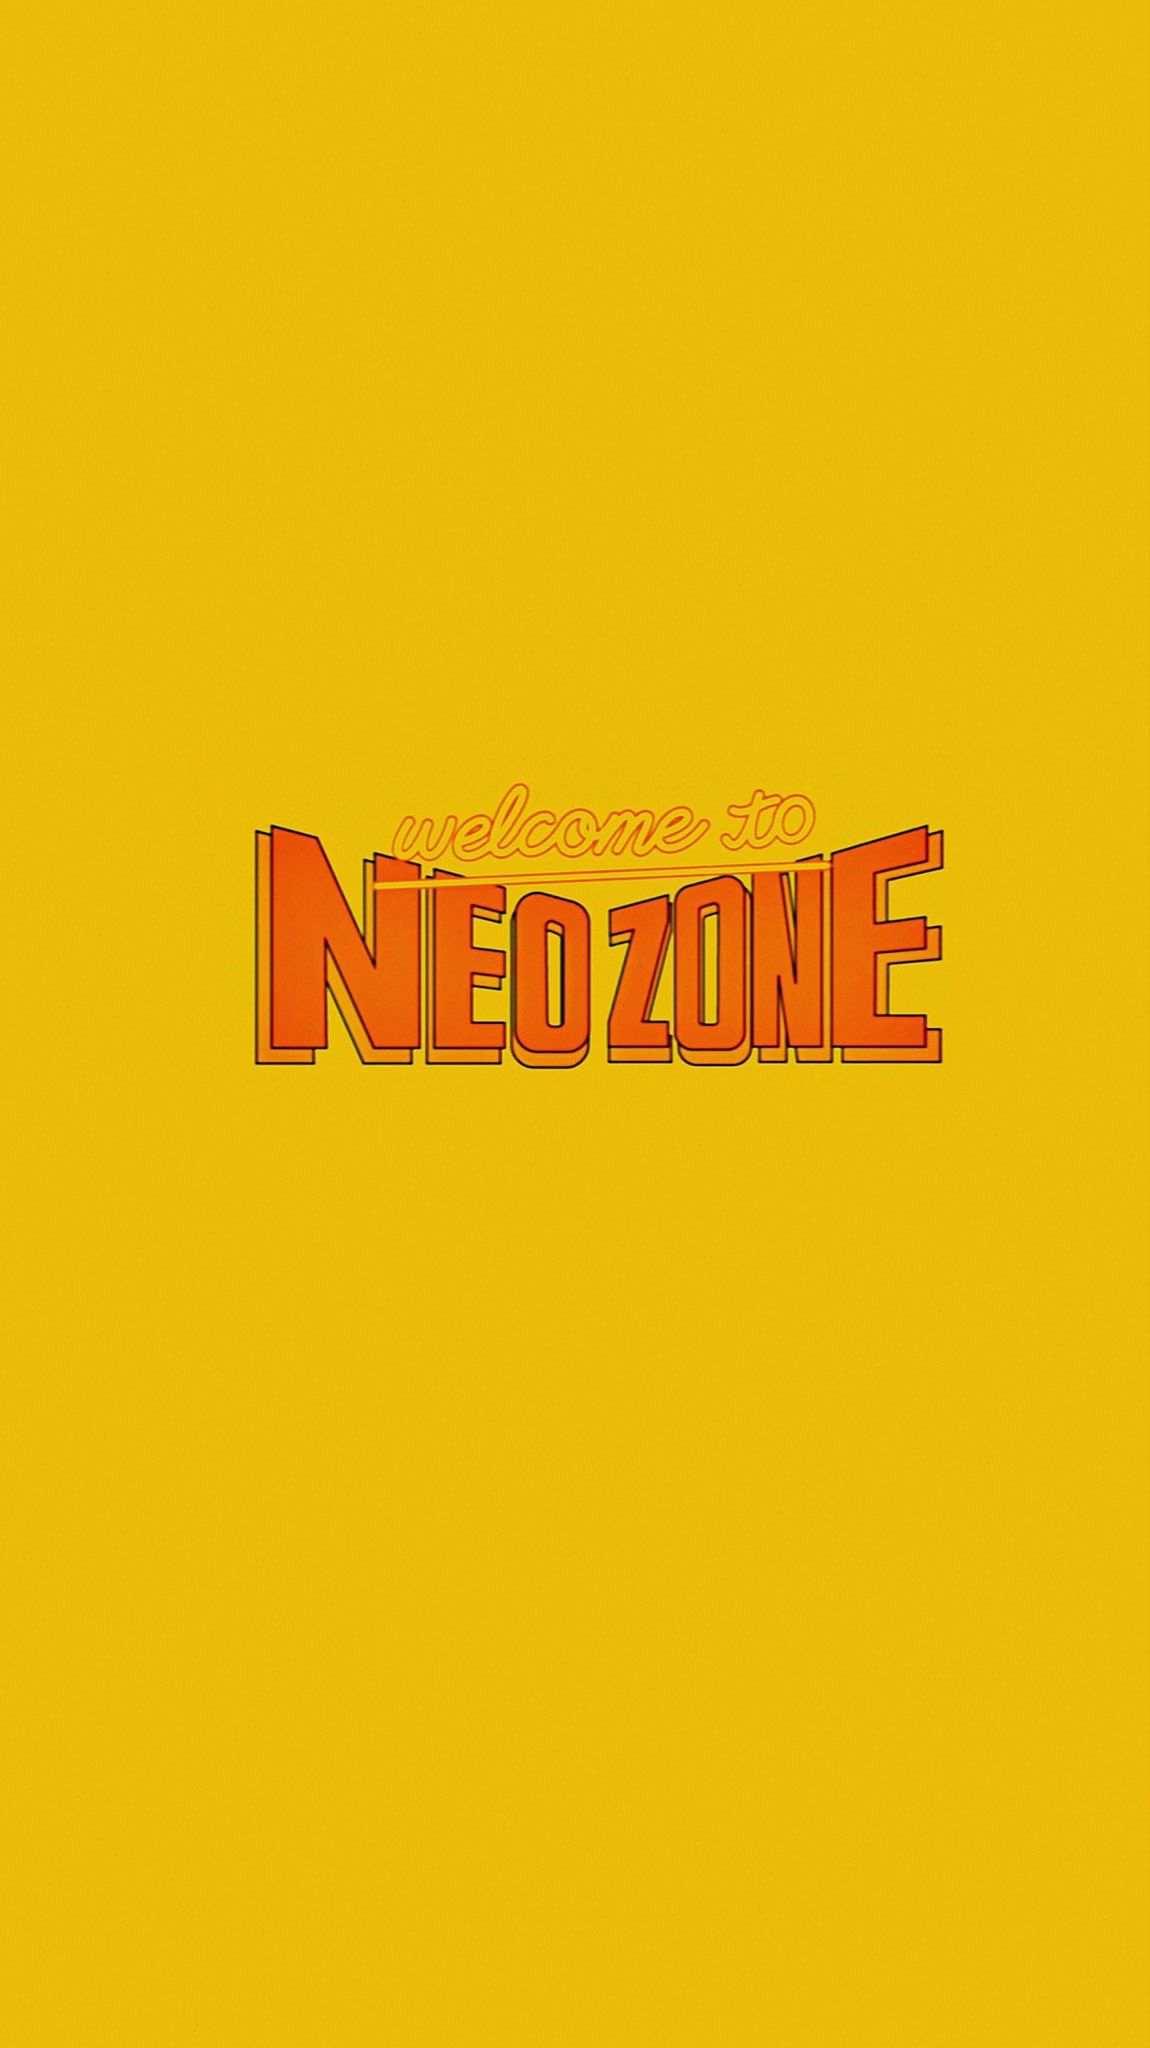 Wallpaper For Neozone Nct127 Nct In 2020 Nct Logo Nct Kpop Iphone Wallpaper